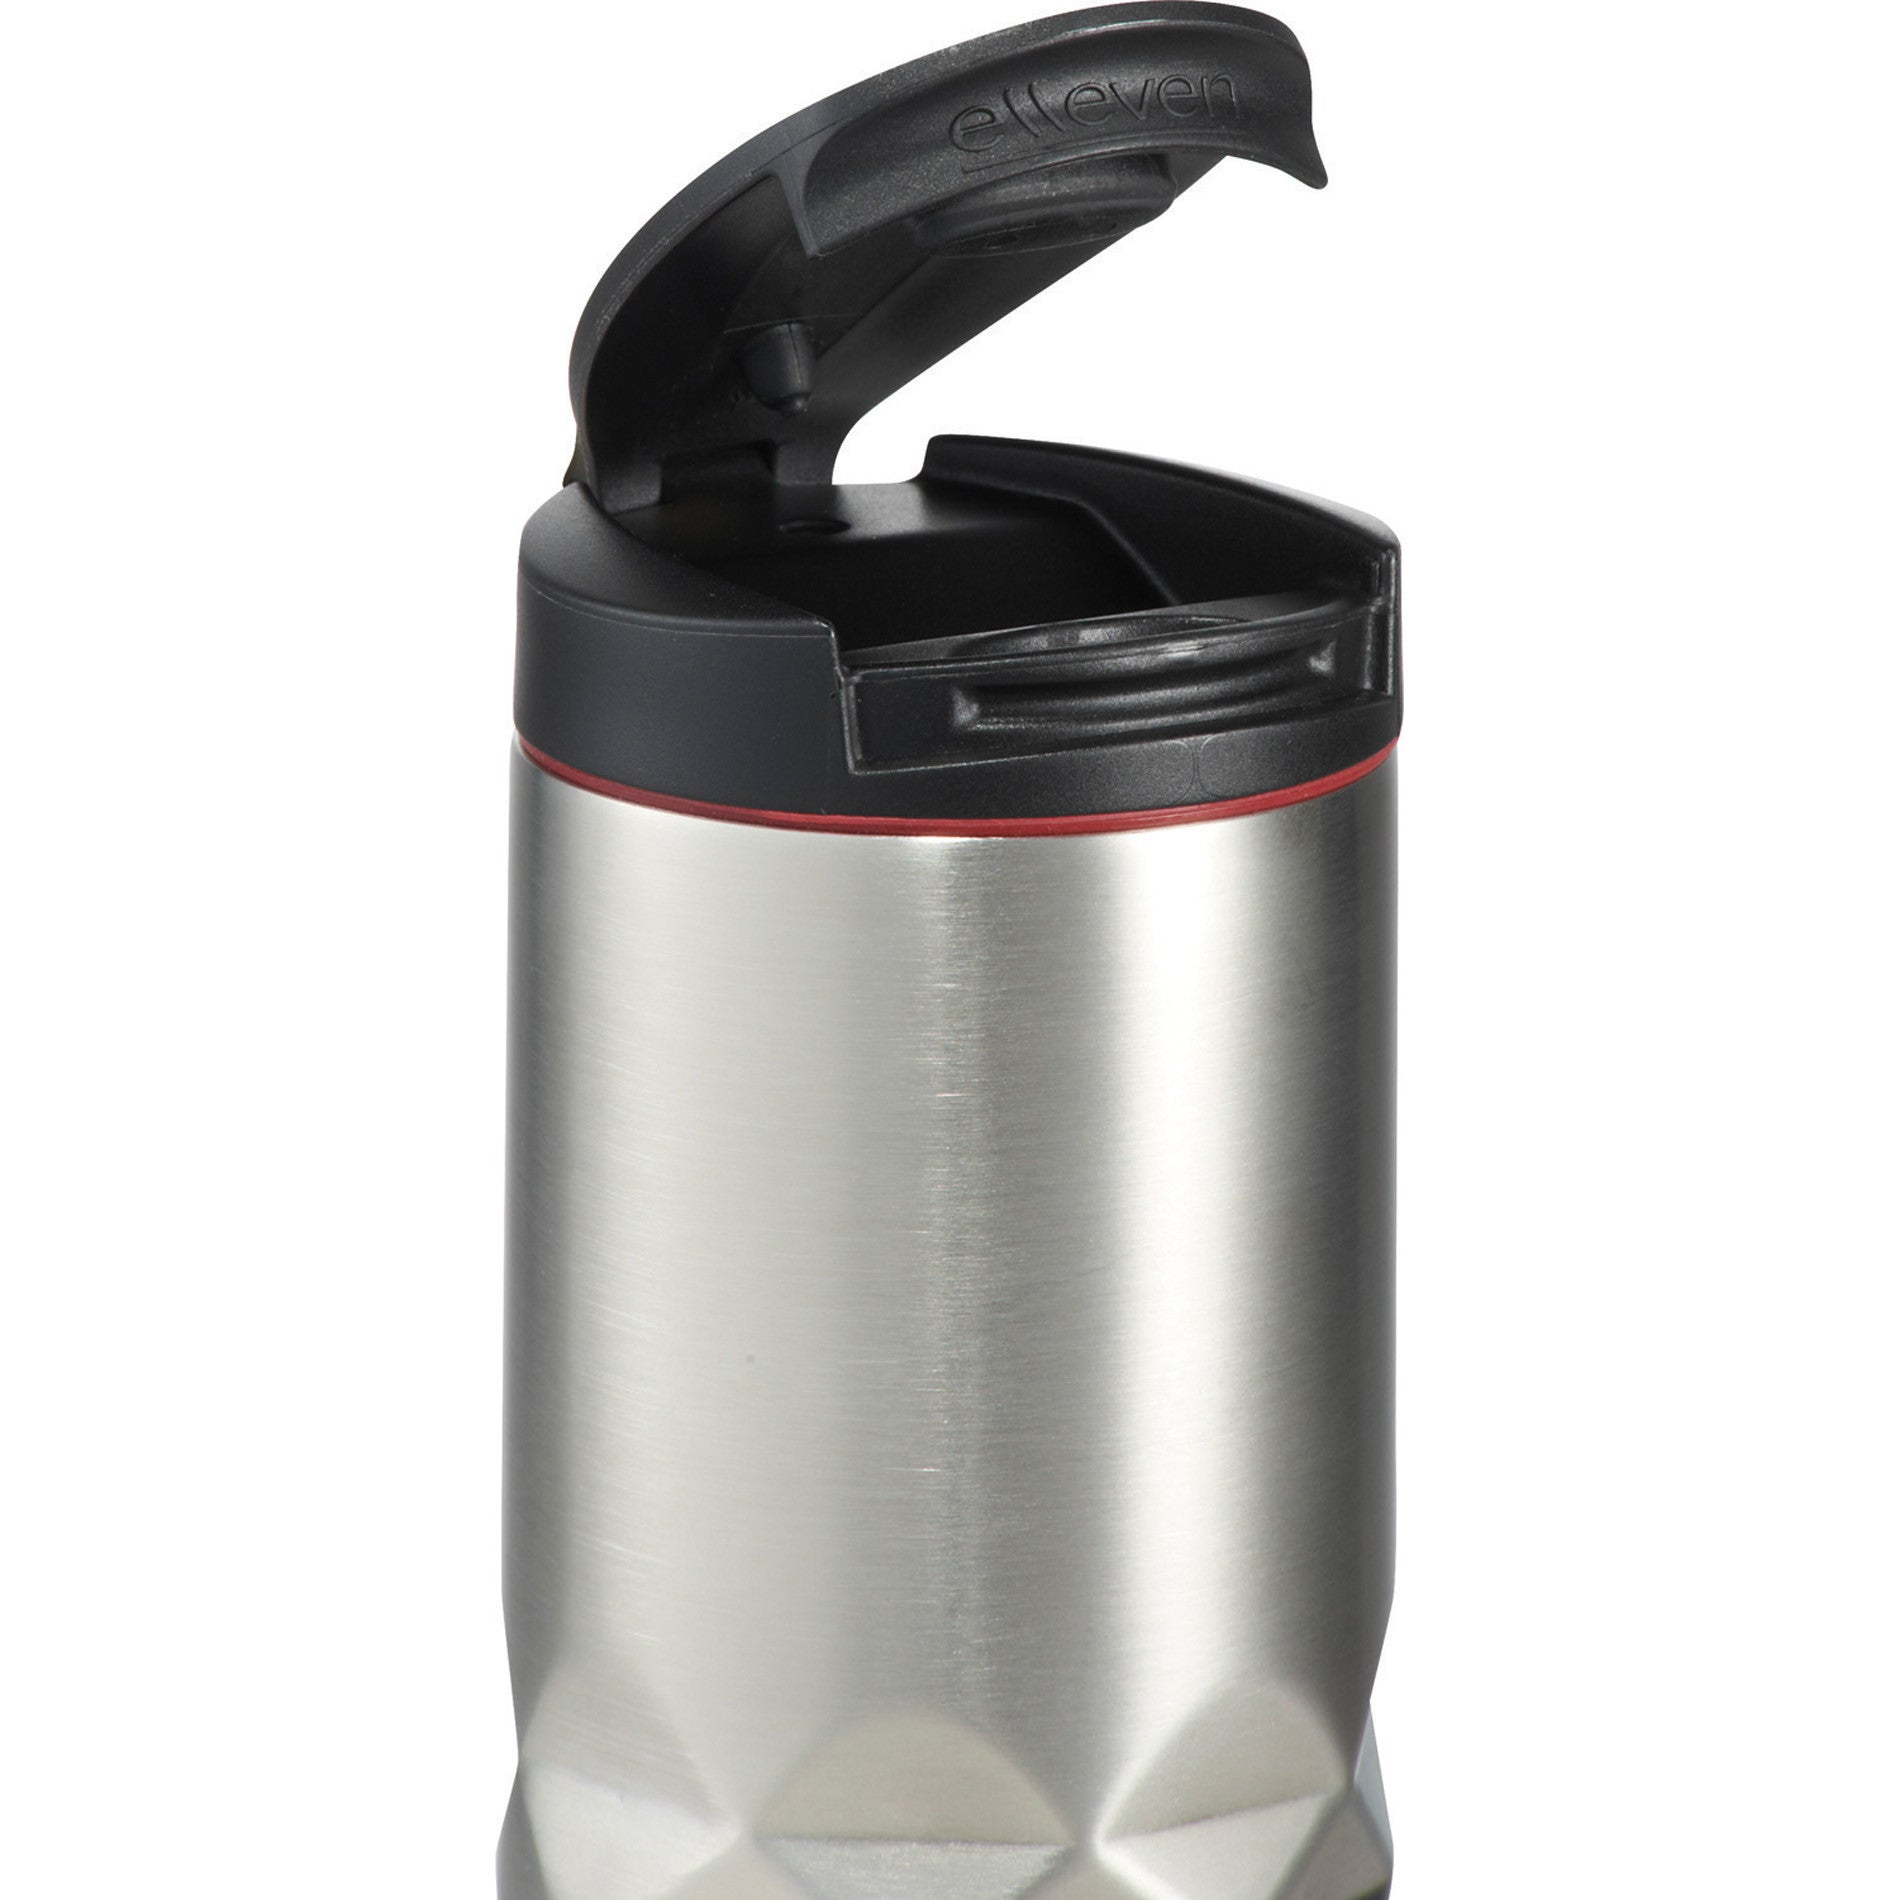 Double Wall Stainless Steel Tumbler 16 oz